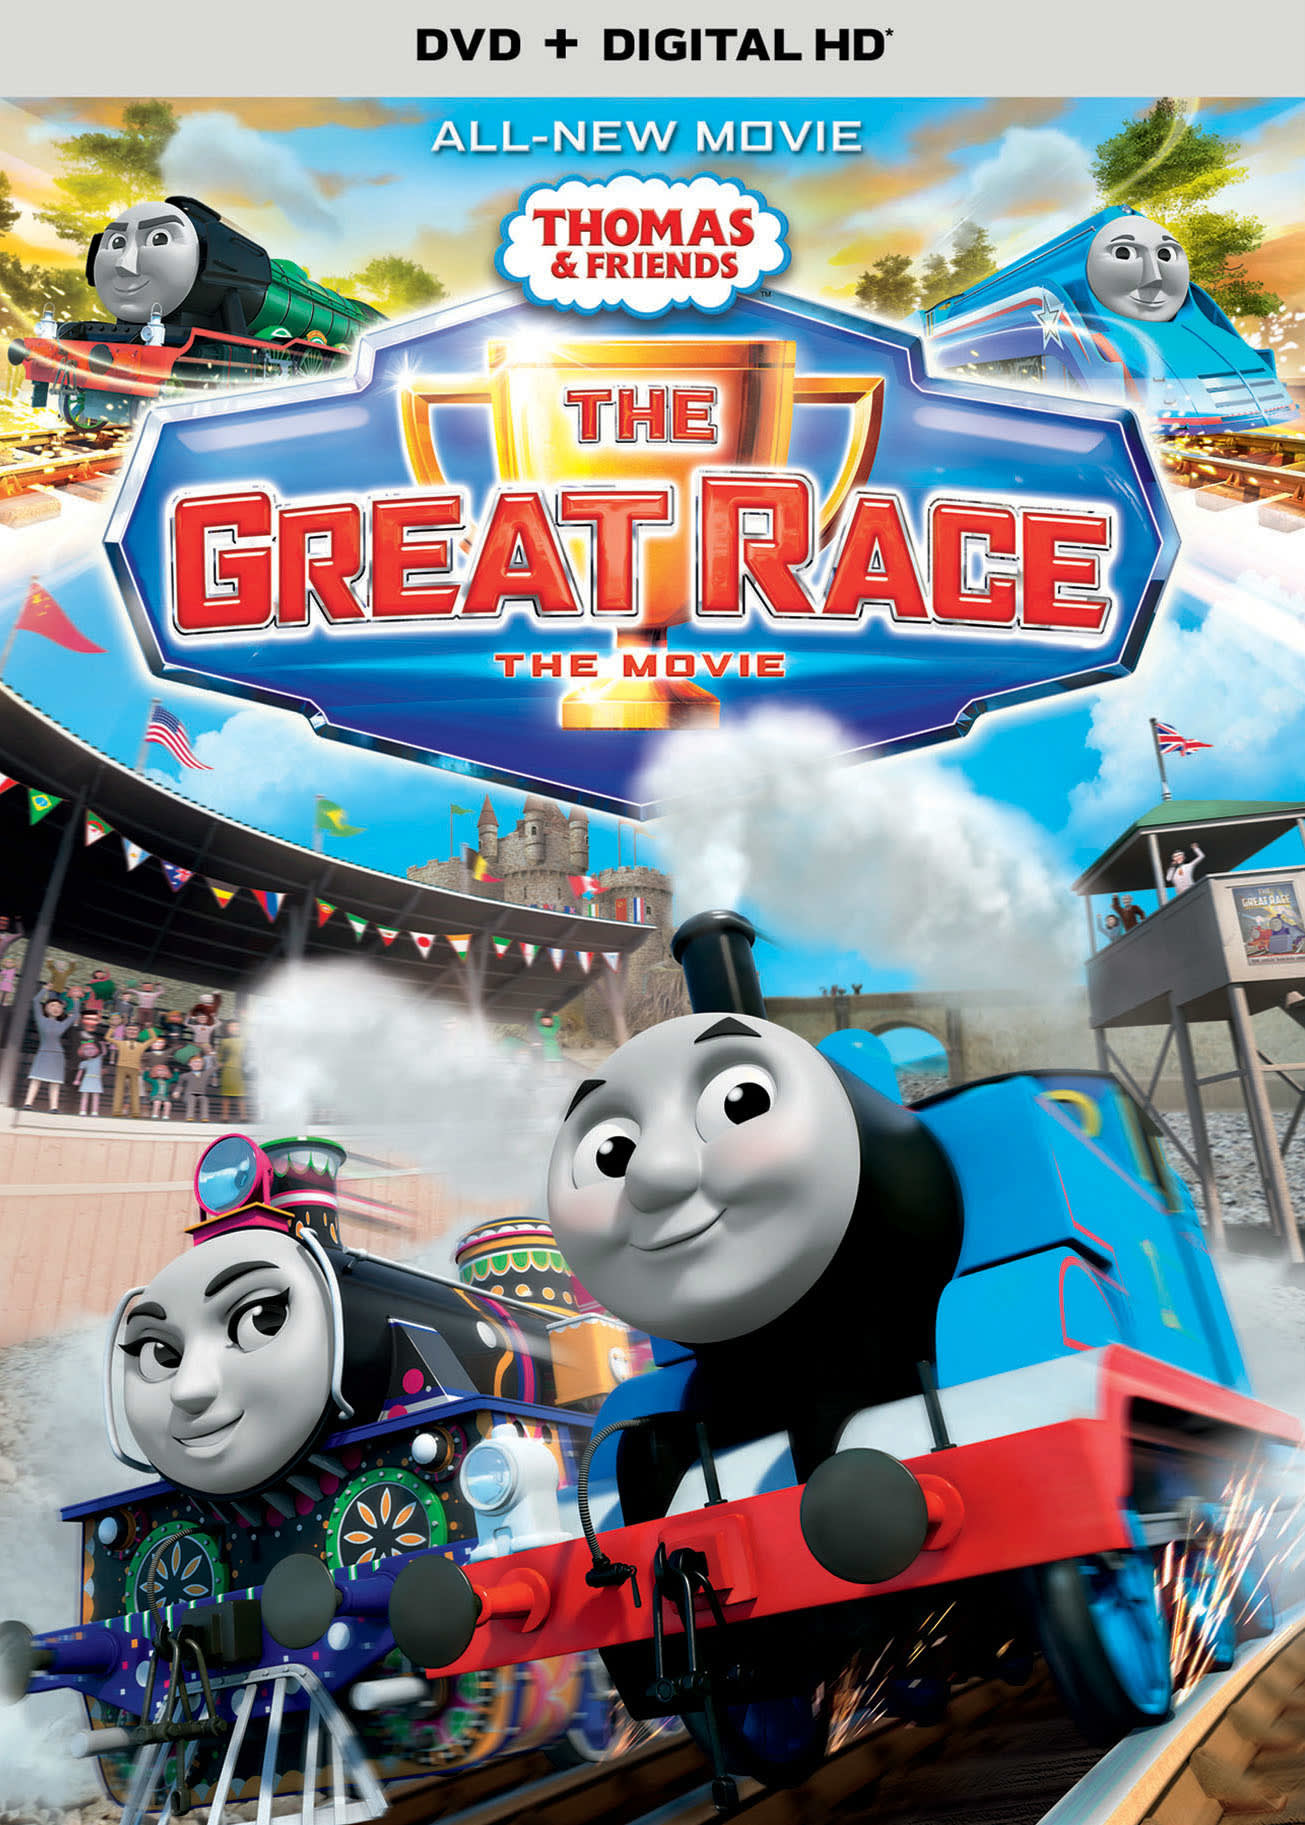 Thomas & Friends: The Great Race - The Movie [DVD]